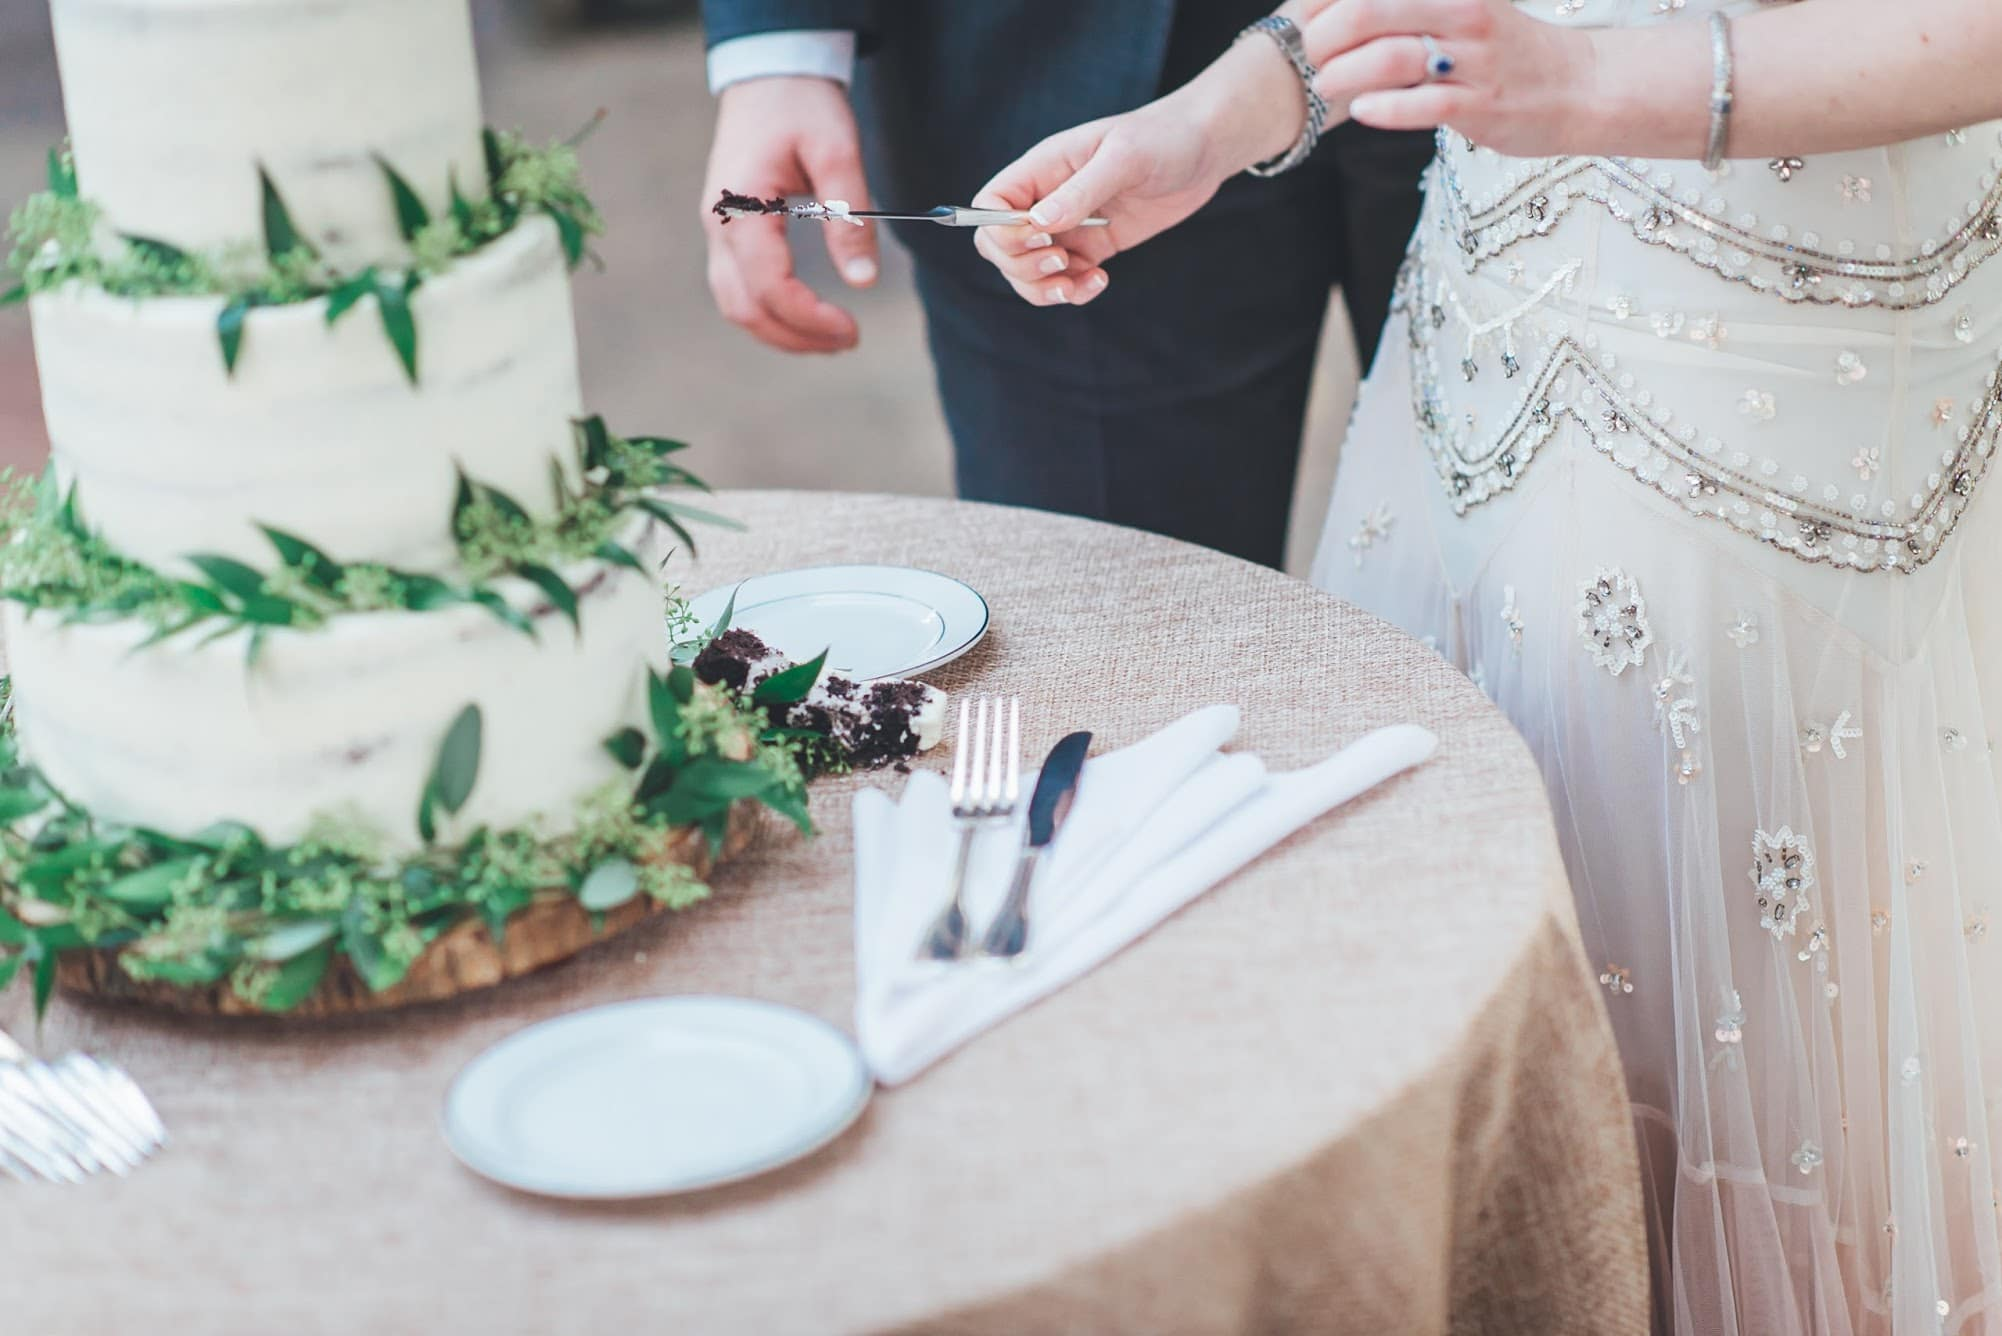 161011-402 catering san diego wedding catering